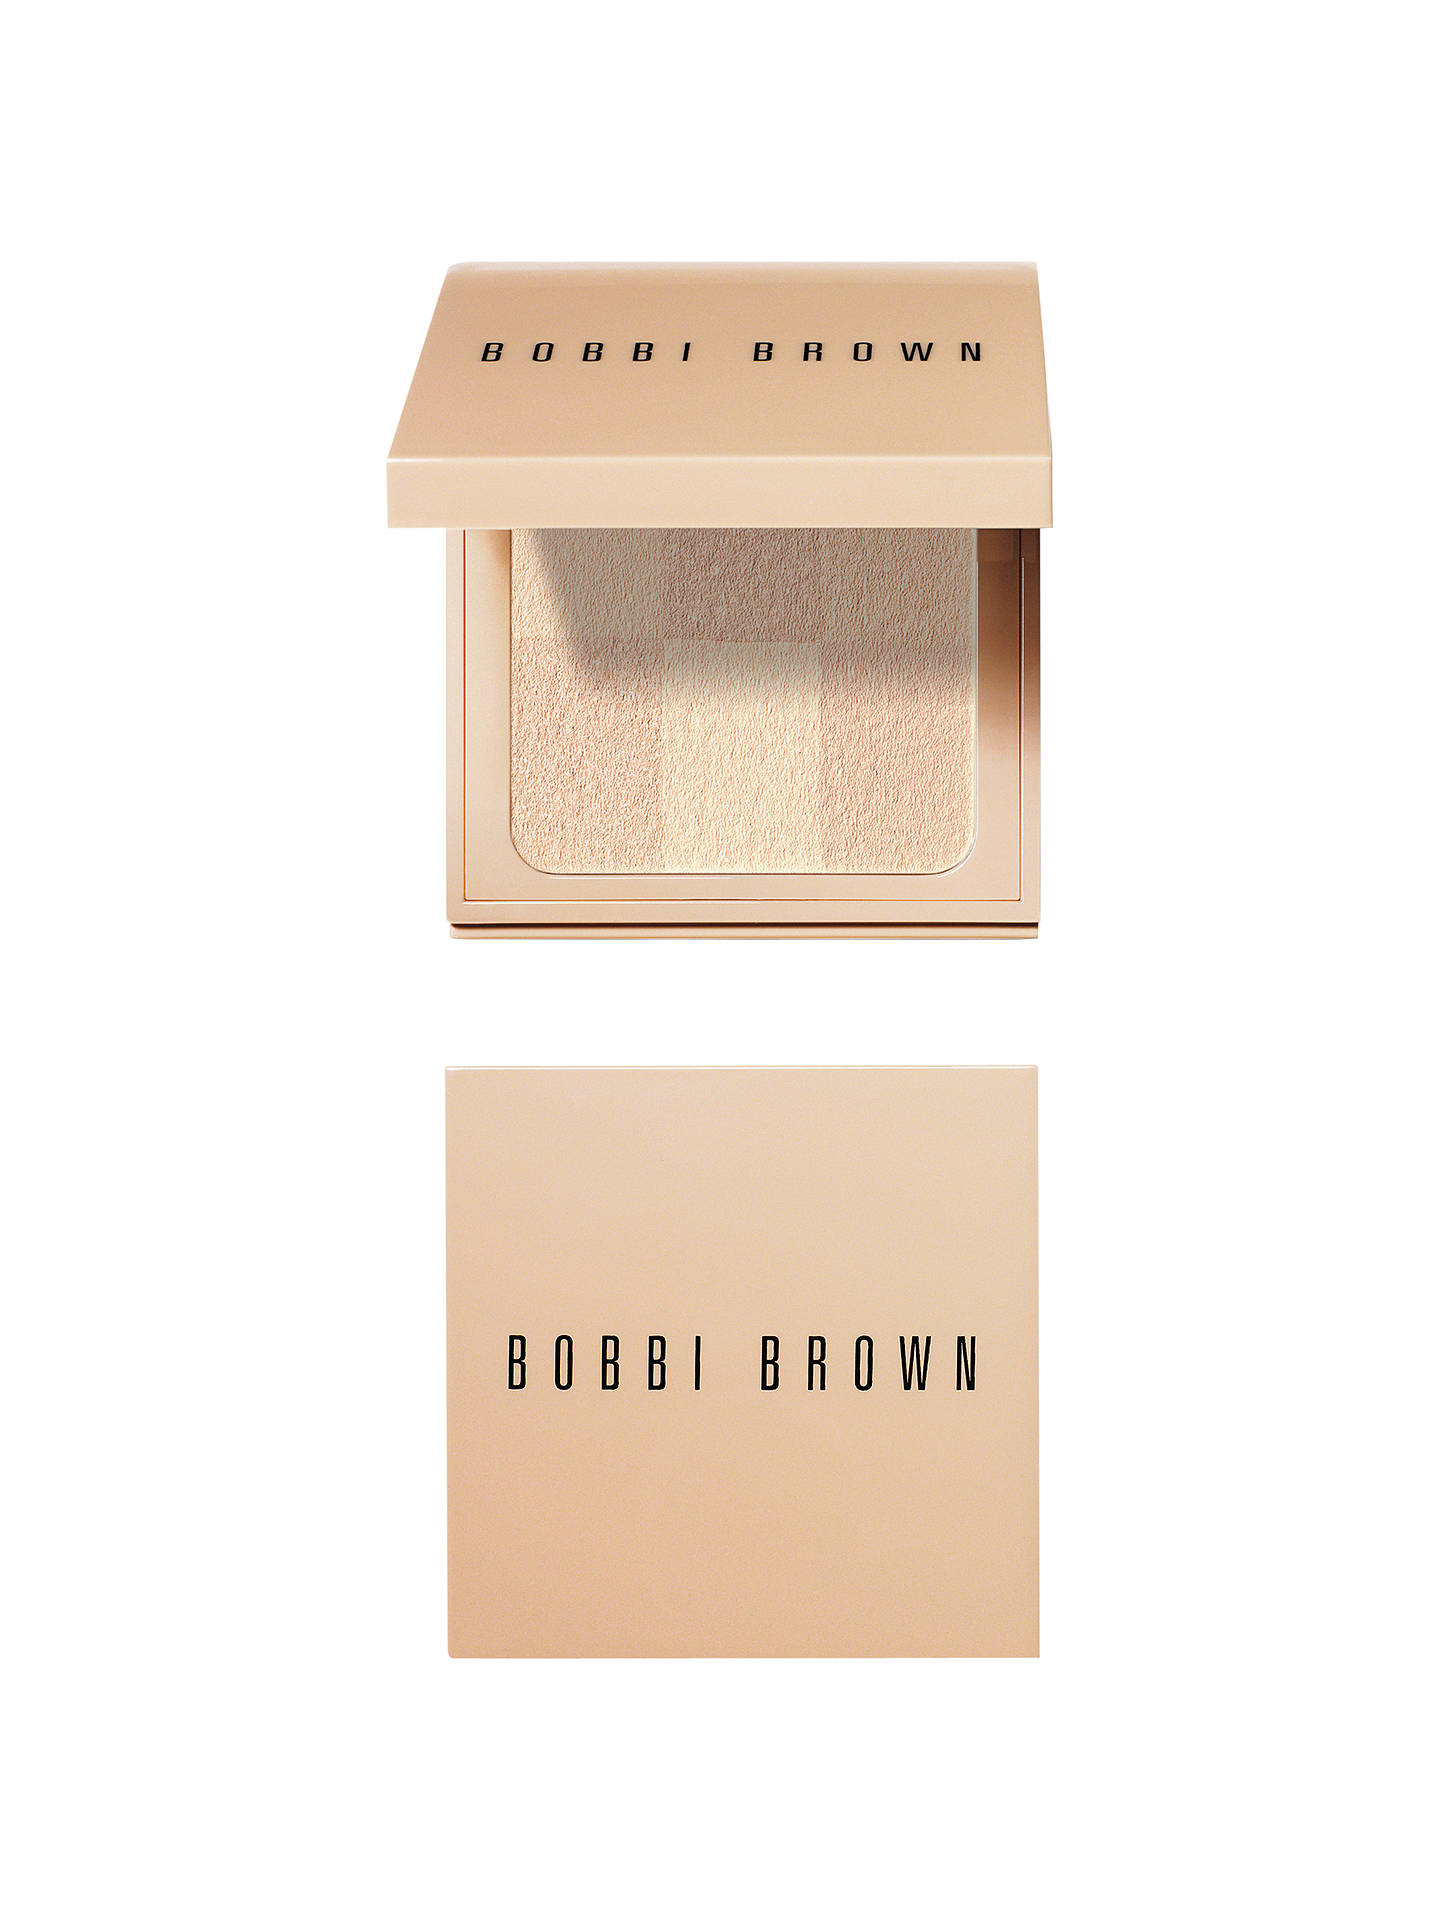 Bobbi Brown Nude Finish Illuminating Powder-1